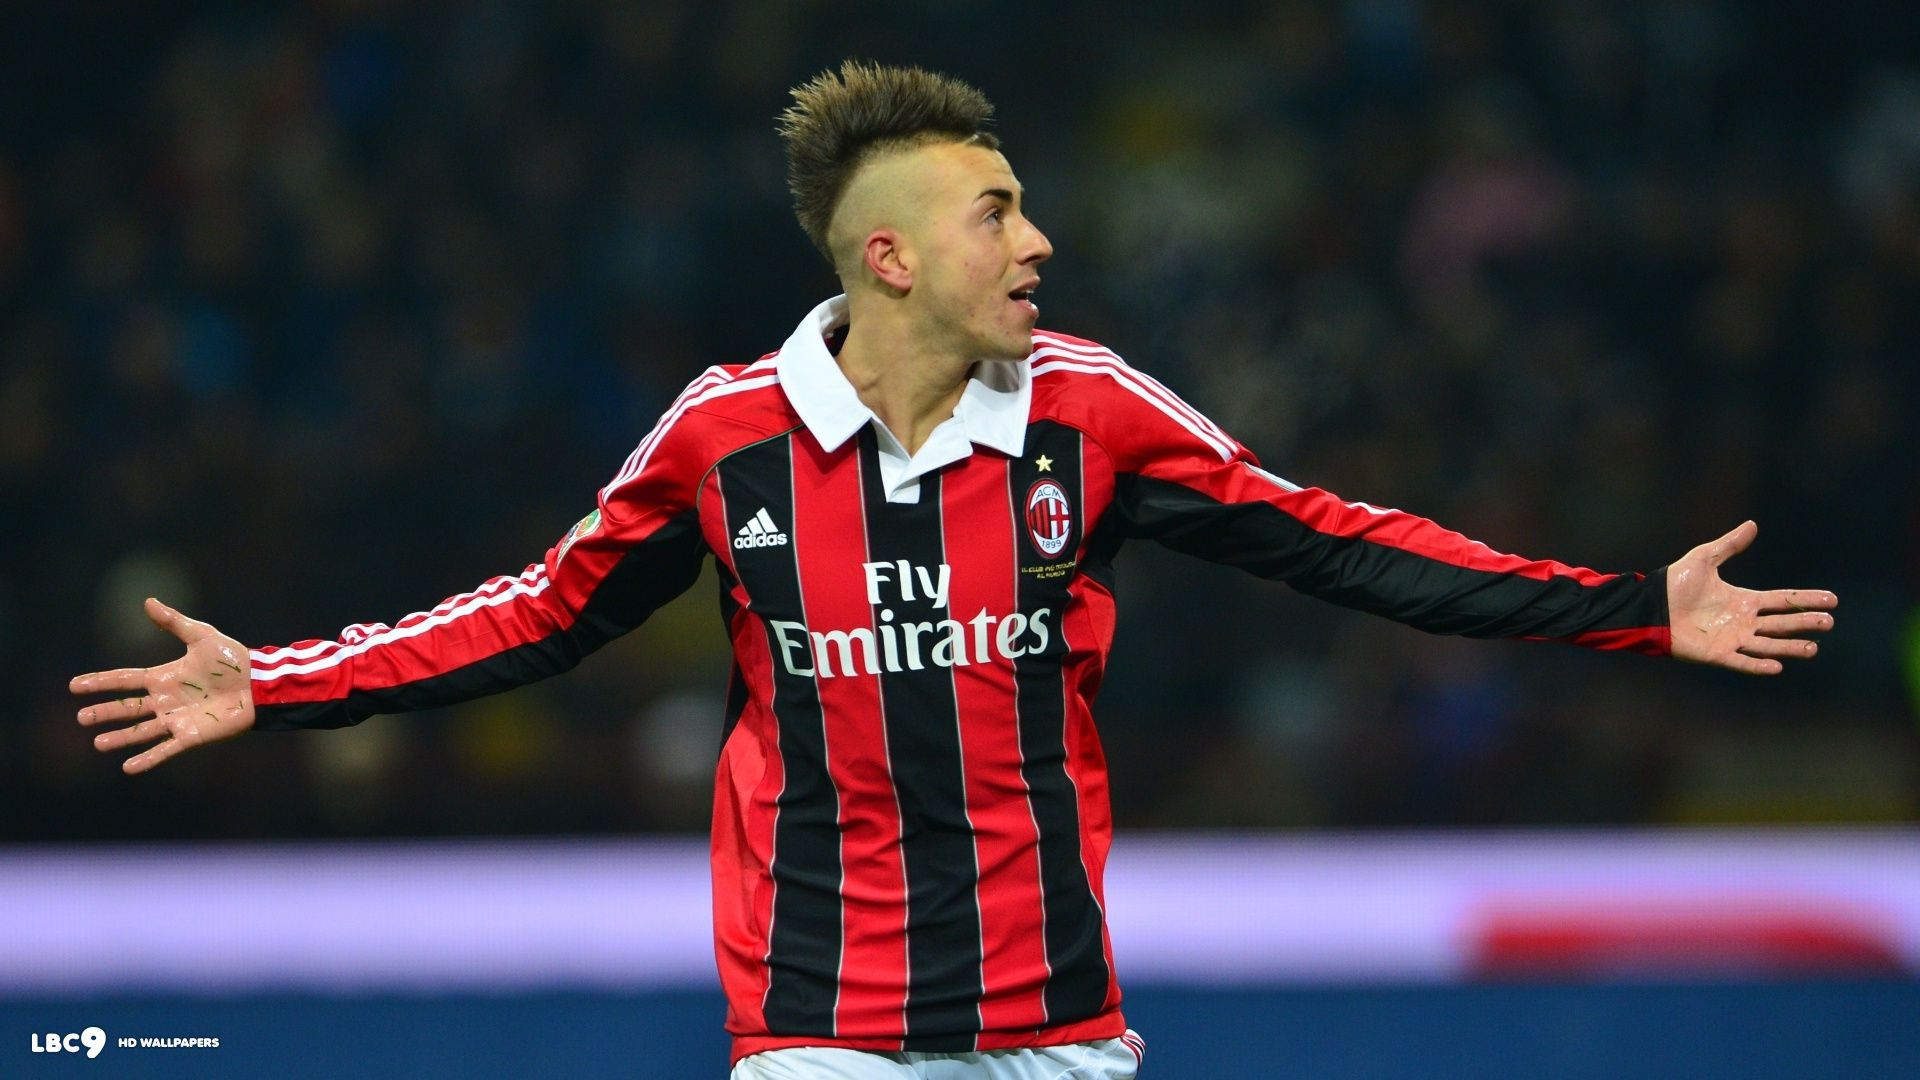 Stephan el shaarawy wallpaper 25 players hd backgrounds all stephan el shaarawy wallpaper 25 players hd backgrounds voltagebd Choice Image